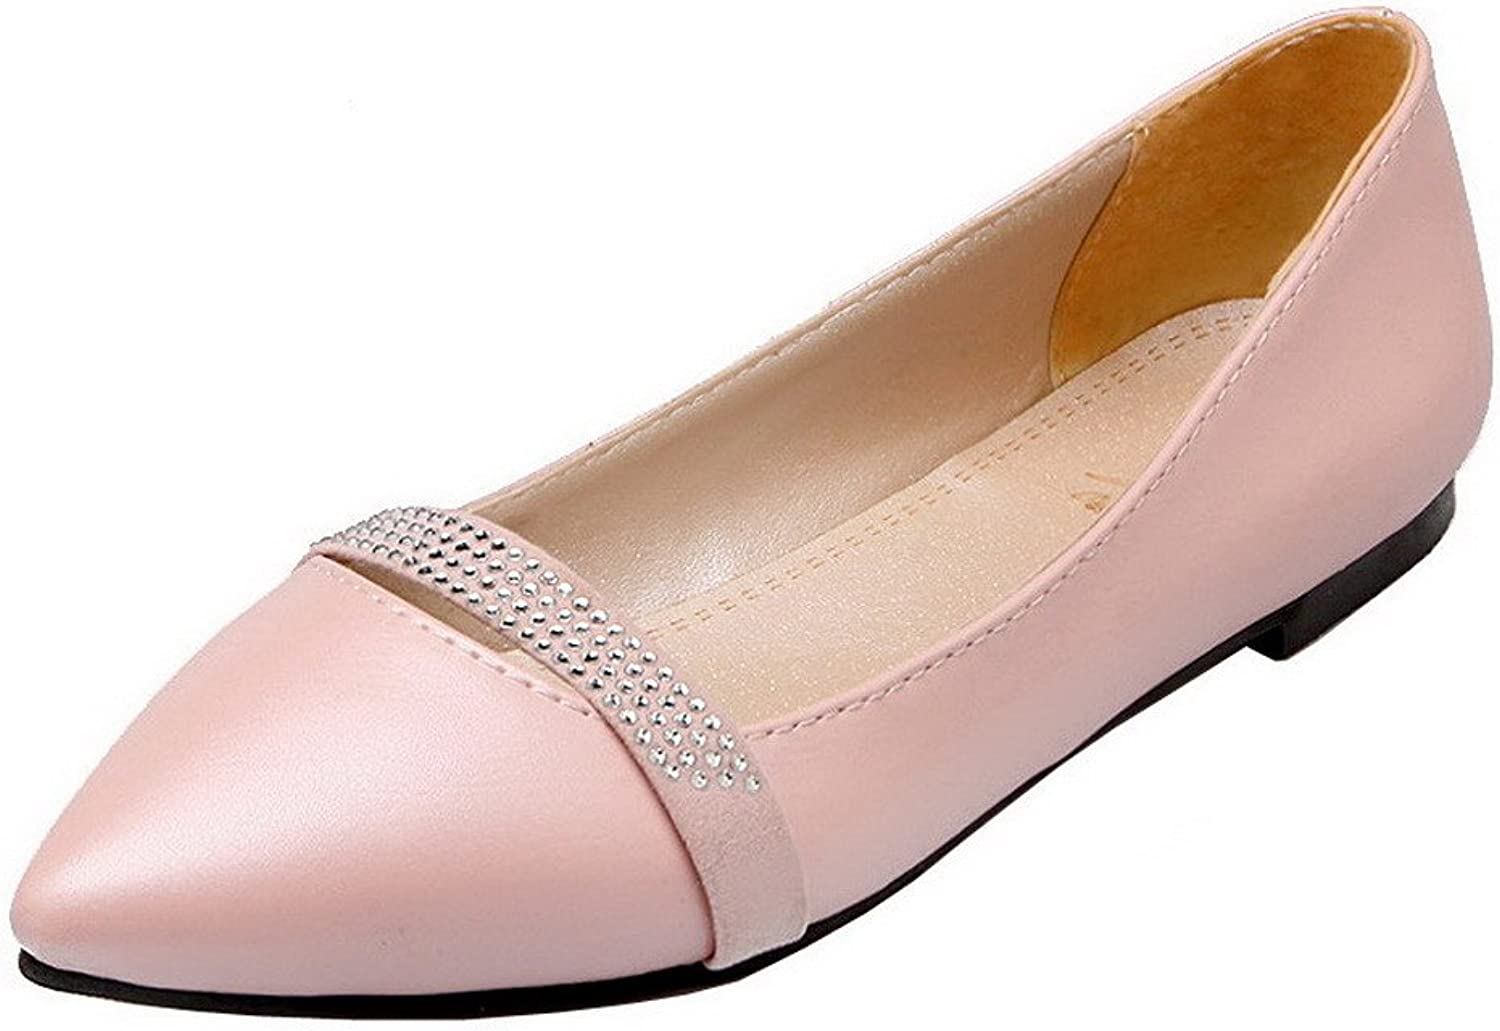 WeiPoot Women's Low-Heels Solid Pull-On PU Pumps-shoes